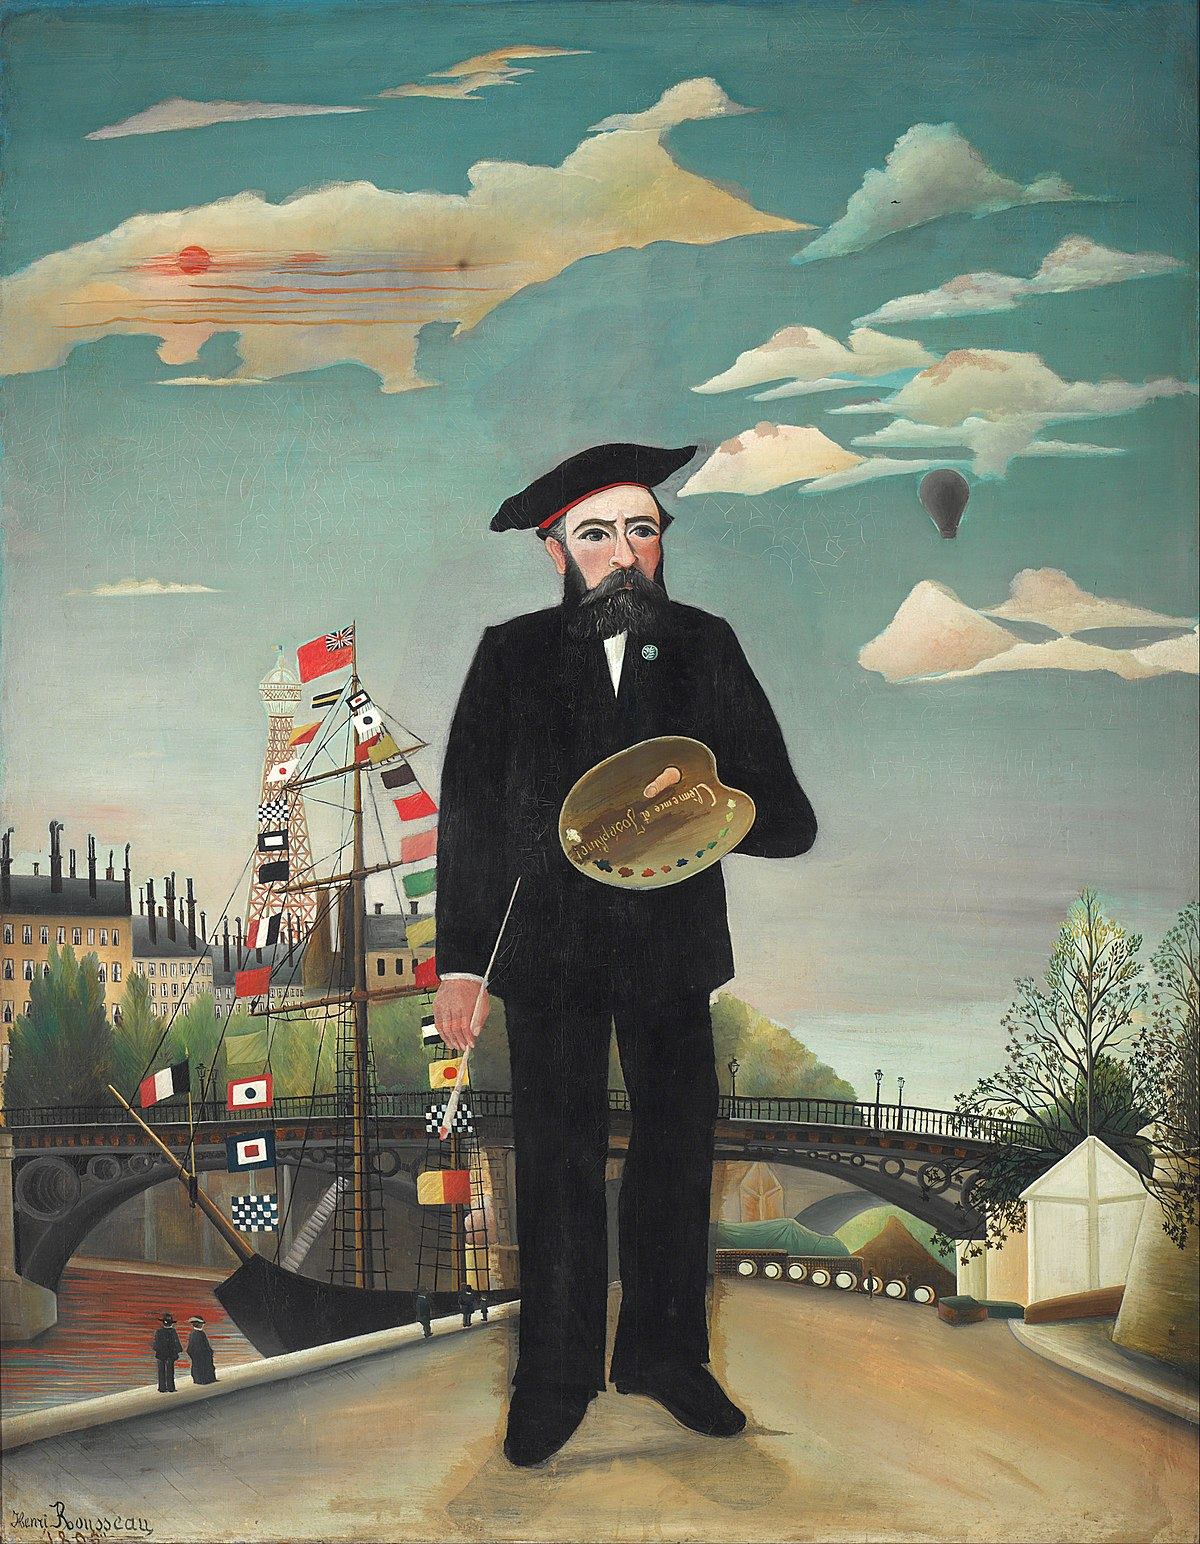 http://upload.wikimedia.org/wikipedia/commons/thumb/4/40/Henri_Rousseau_-_Myself-_Portrait_%E2%80%93_Landscape_-_Google_Art_Project.jpg/1200px-Henri_Rousseau_-_Myself-_Portrait_%E2%80%93_Landscape_-_Google_Art_Project.jpg